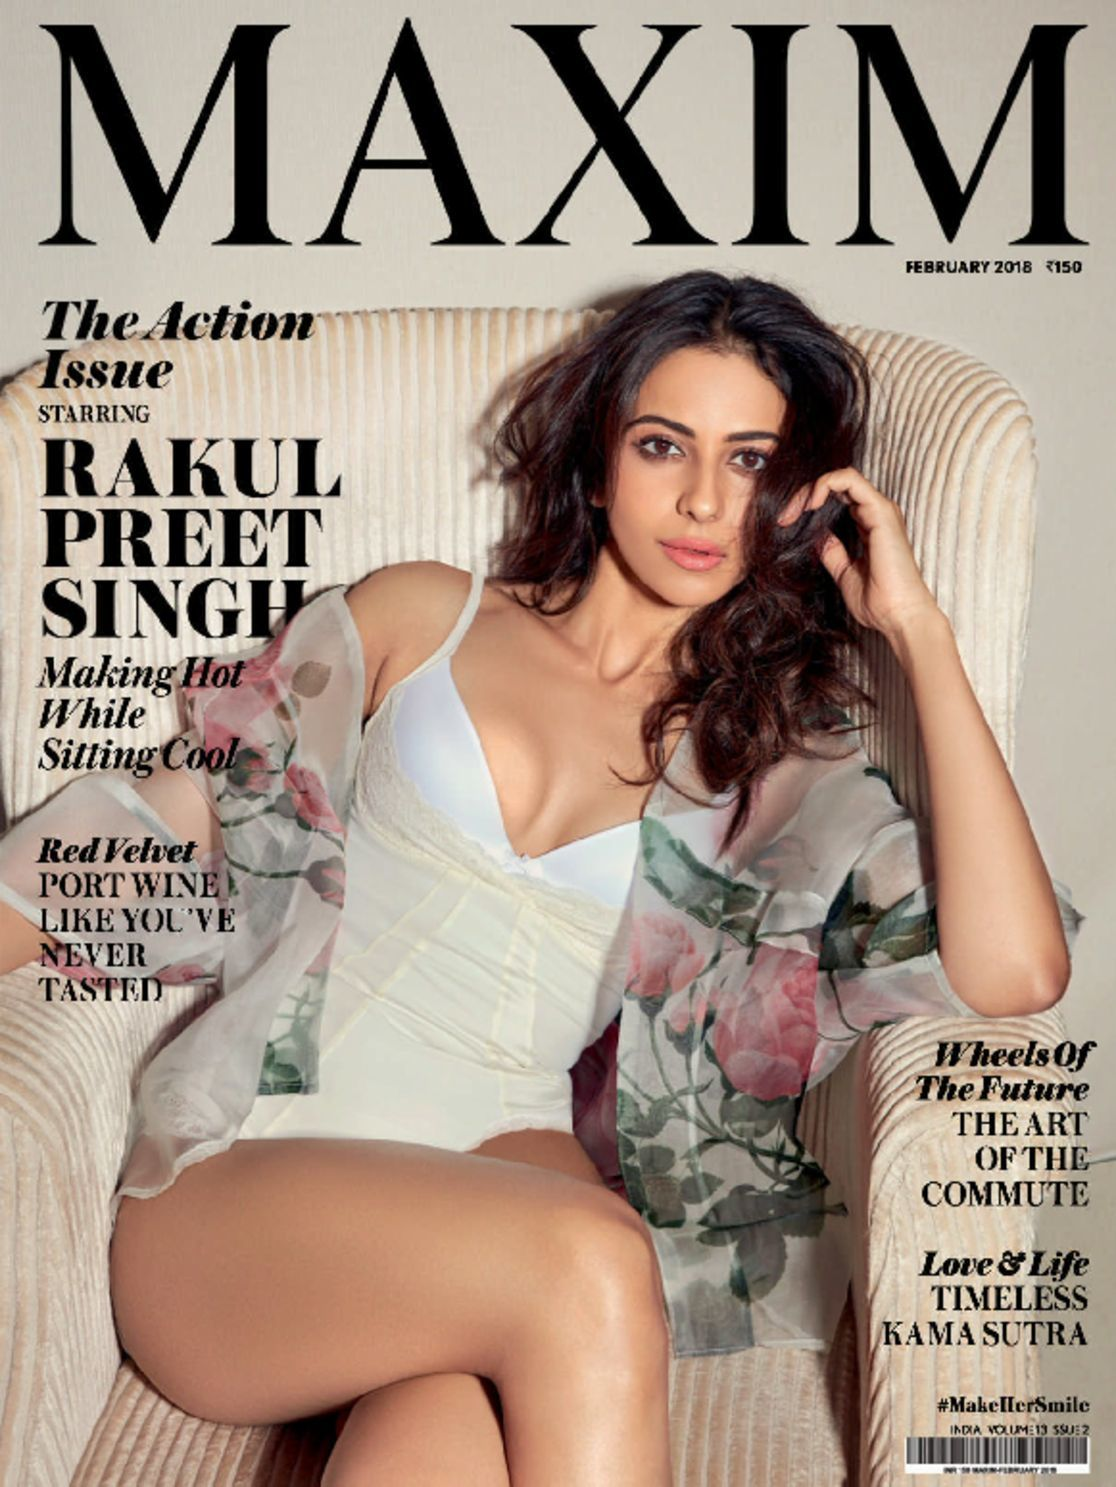 a review of maxim magazine Reviews from maxim magazine employees about maxim magazine culture, salaries, benefits, work-life balance, management, job security, and more.